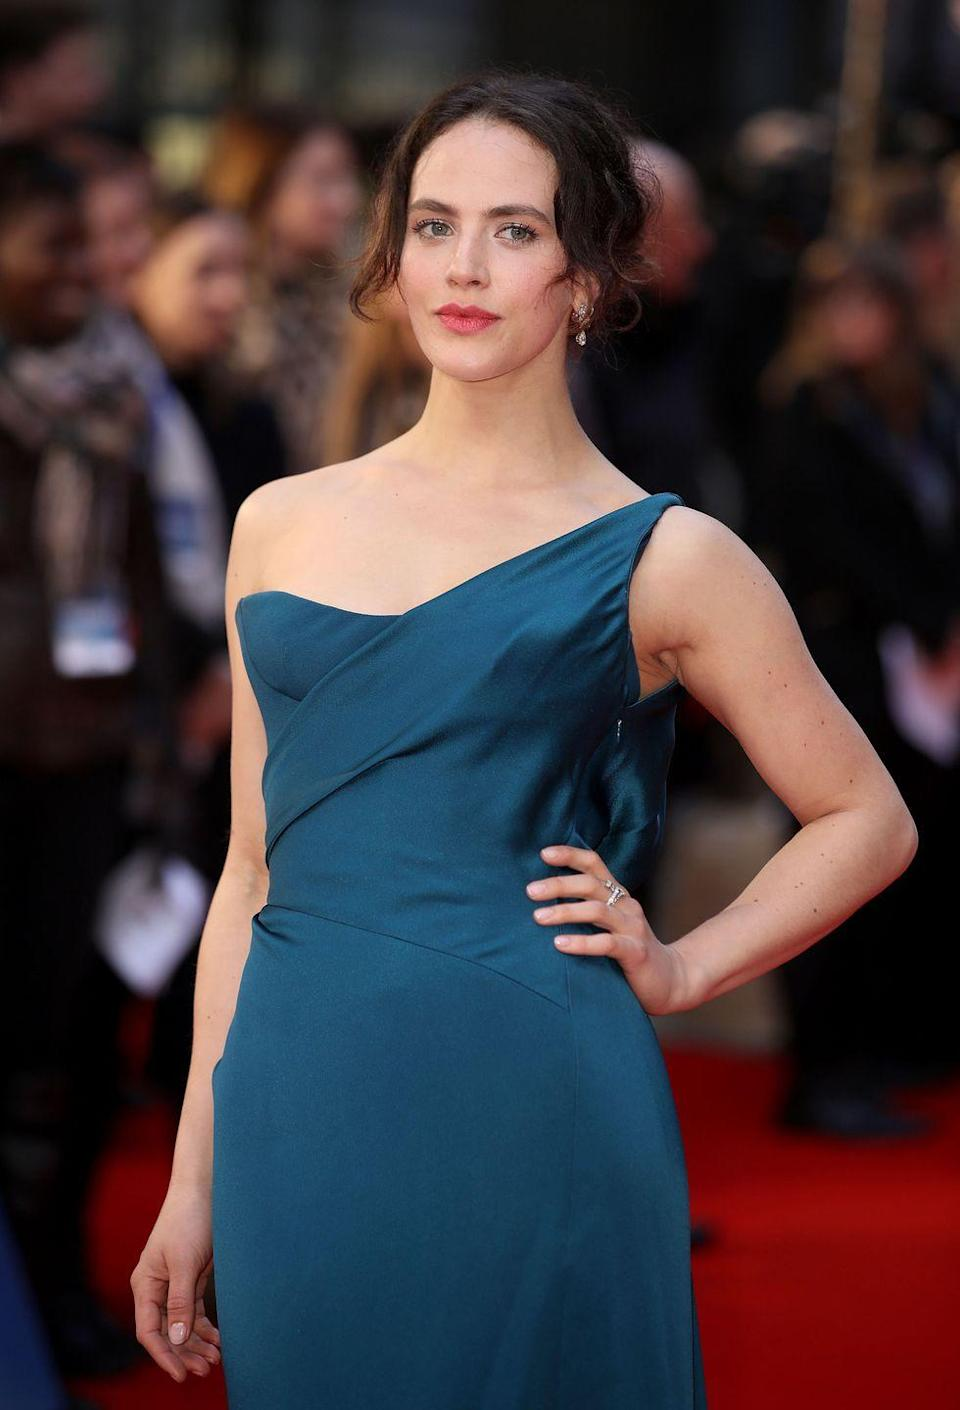 """<p><em>Downton Abbey </em>star Jessica Brown Findlay started taking ballet when she was just 2 years old. The actress continued in hopes of becoming a full-fledged ballerina. </p><p>But at 17, she experienced an ankle injury that forced her to get surgery and cast aside her dream. """"I suppose I learned that putting all your eggs in one basket can be dangerous,"""" <a href=""""https://www.marieclaire.co.uk/entertainment/people/jessica-brown-findlay-harlots-eating-disorder-489638"""" rel=""""nofollow noopener"""" target=""""_blank"""" data-ylk=""""slk:she told Marie Claire"""" class=""""link rapid-noclick-resp"""">she told <em>Marie Claire</em></a> of the experience.</p>"""